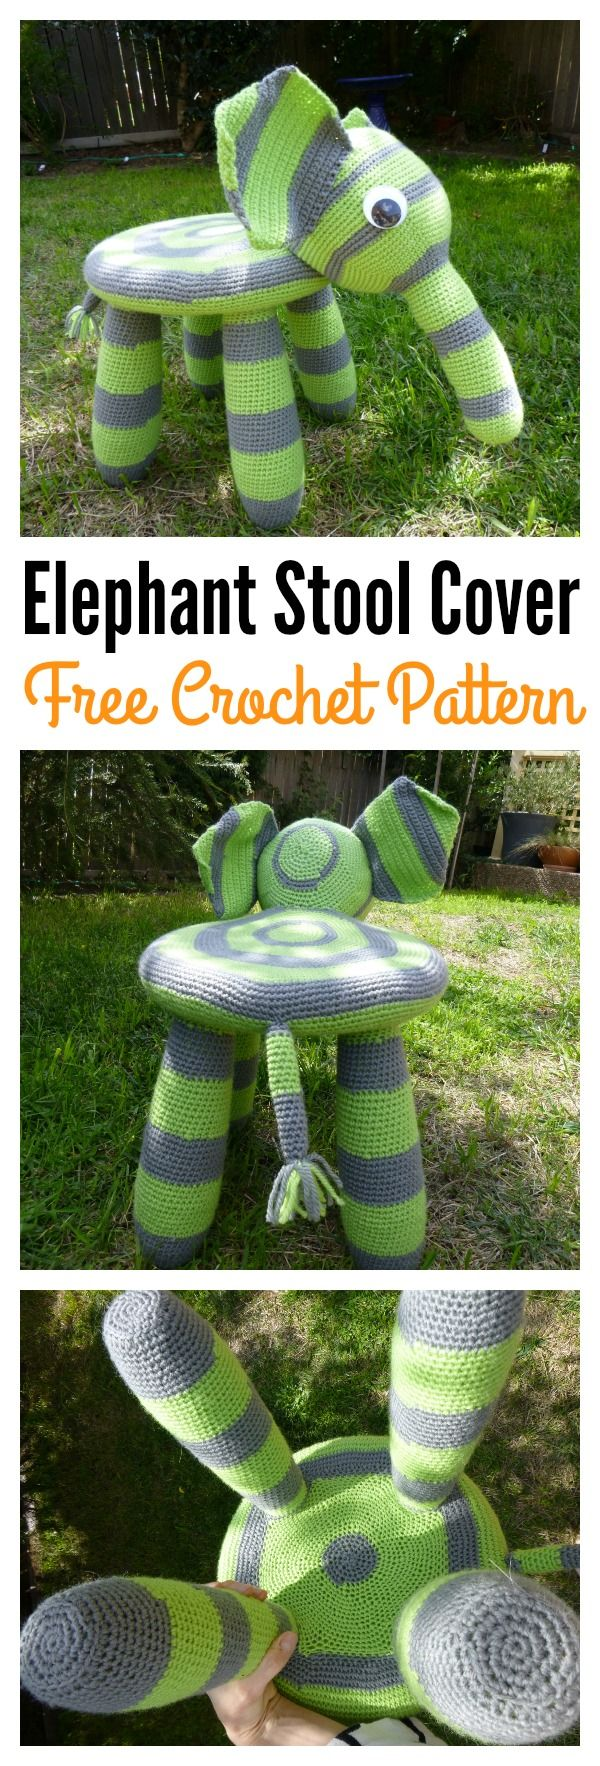 les 440 meilleures images du tableau crochet elephants sur pinterest l phants animaux et. Black Bedroom Furniture Sets. Home Design Ideas